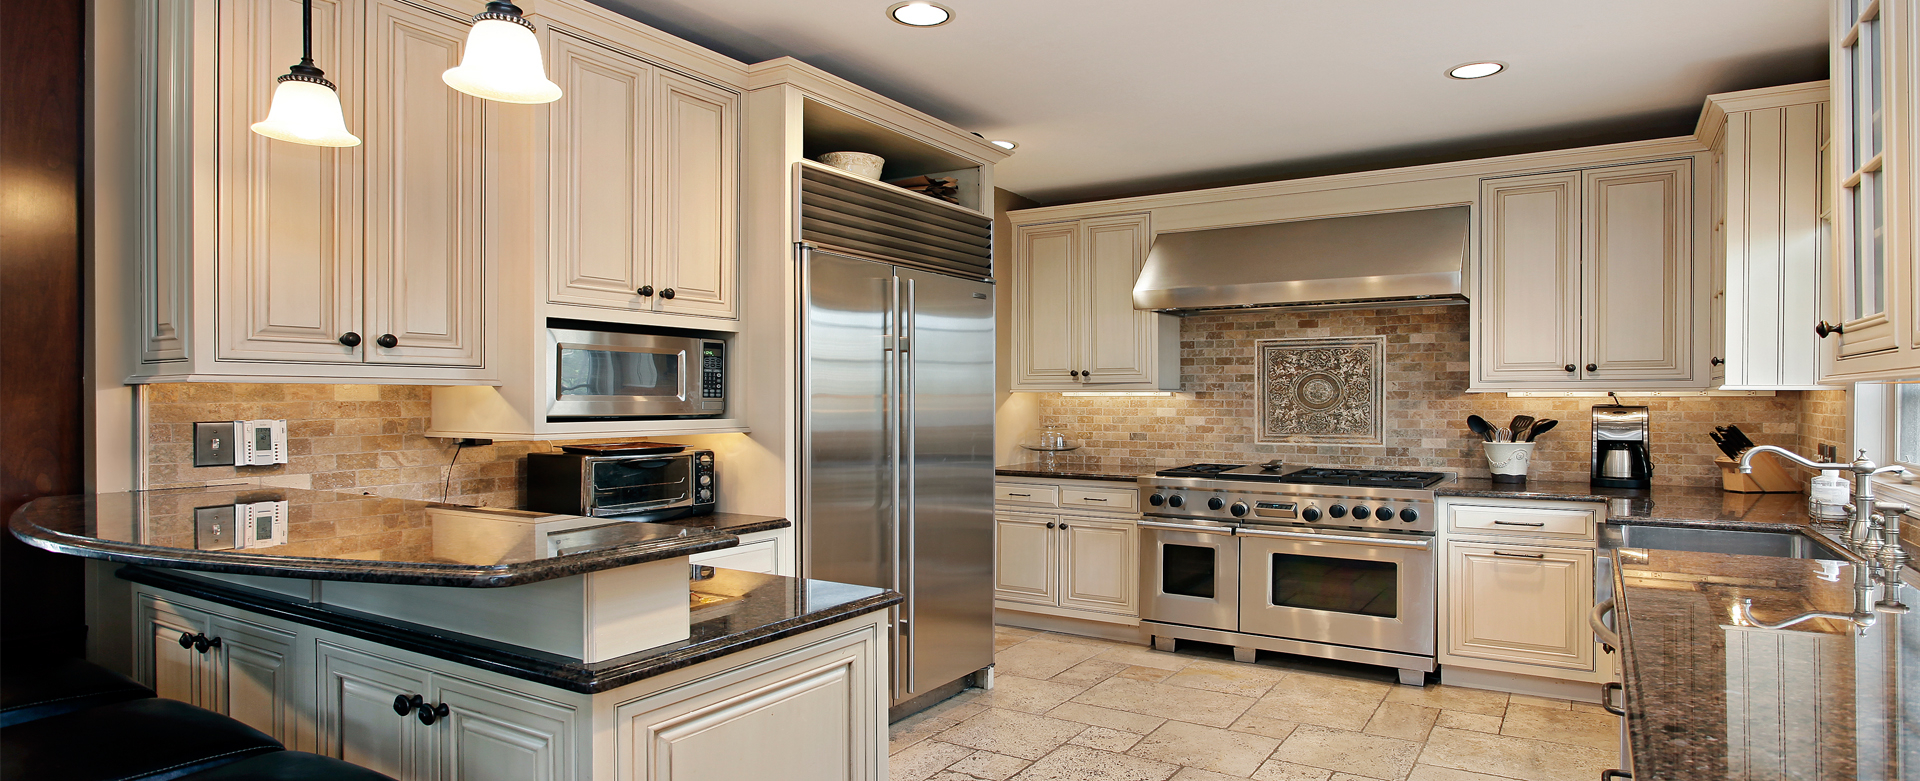 Home Palm Beach Kitchen Cabinets pertaining to measurements 1920 X 781